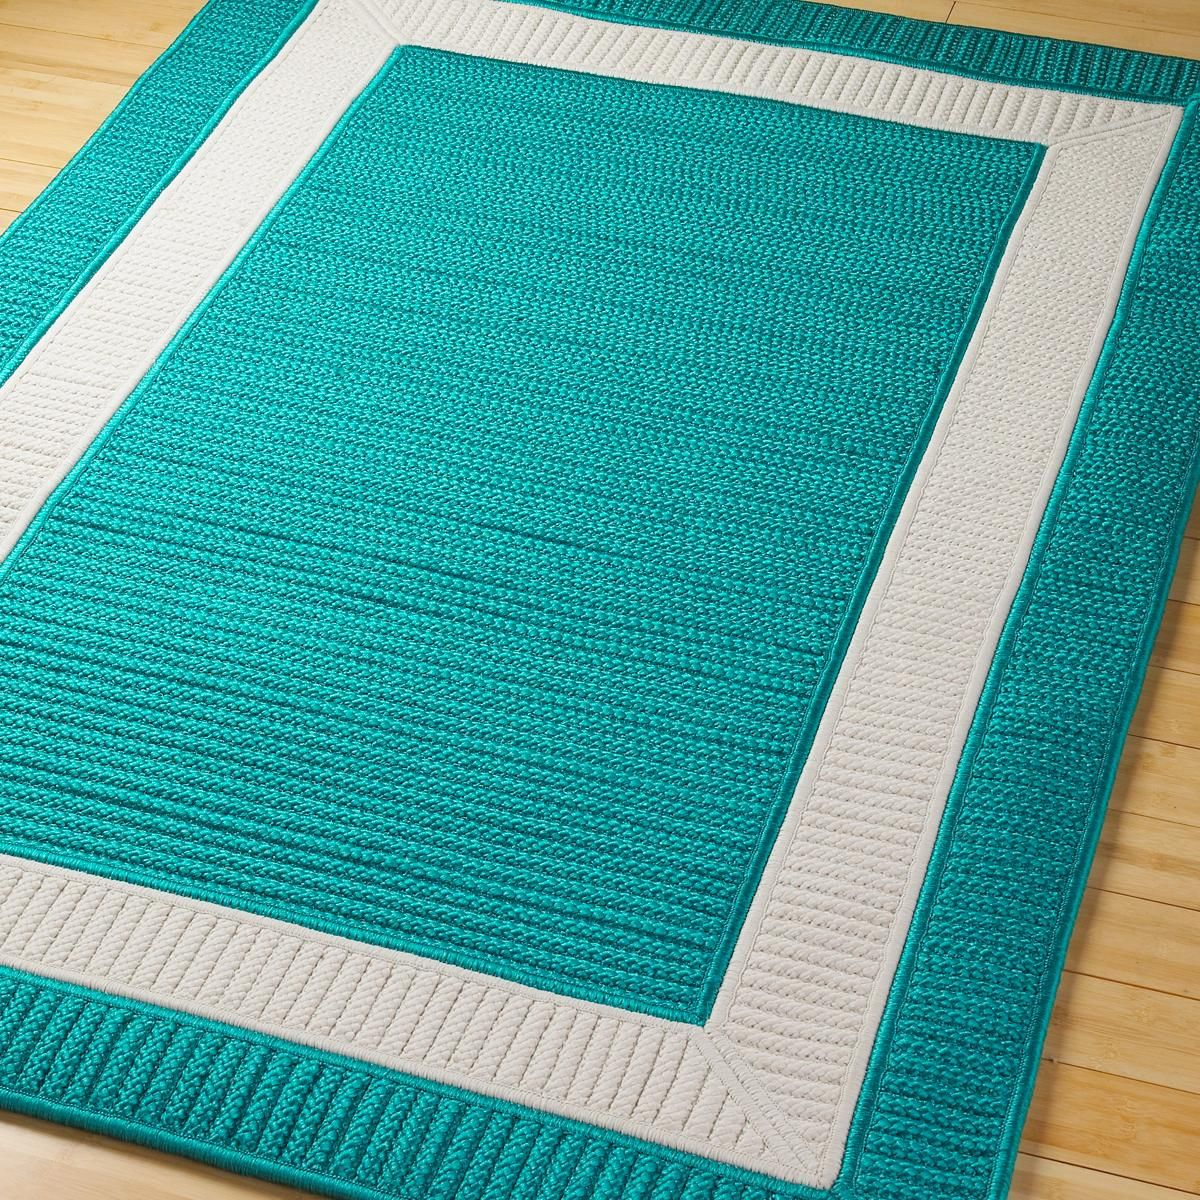 Braided Kitchen Rugs Cabinet Repair Border Indoor Outdoor Rug Turquoise Teal And Aqua